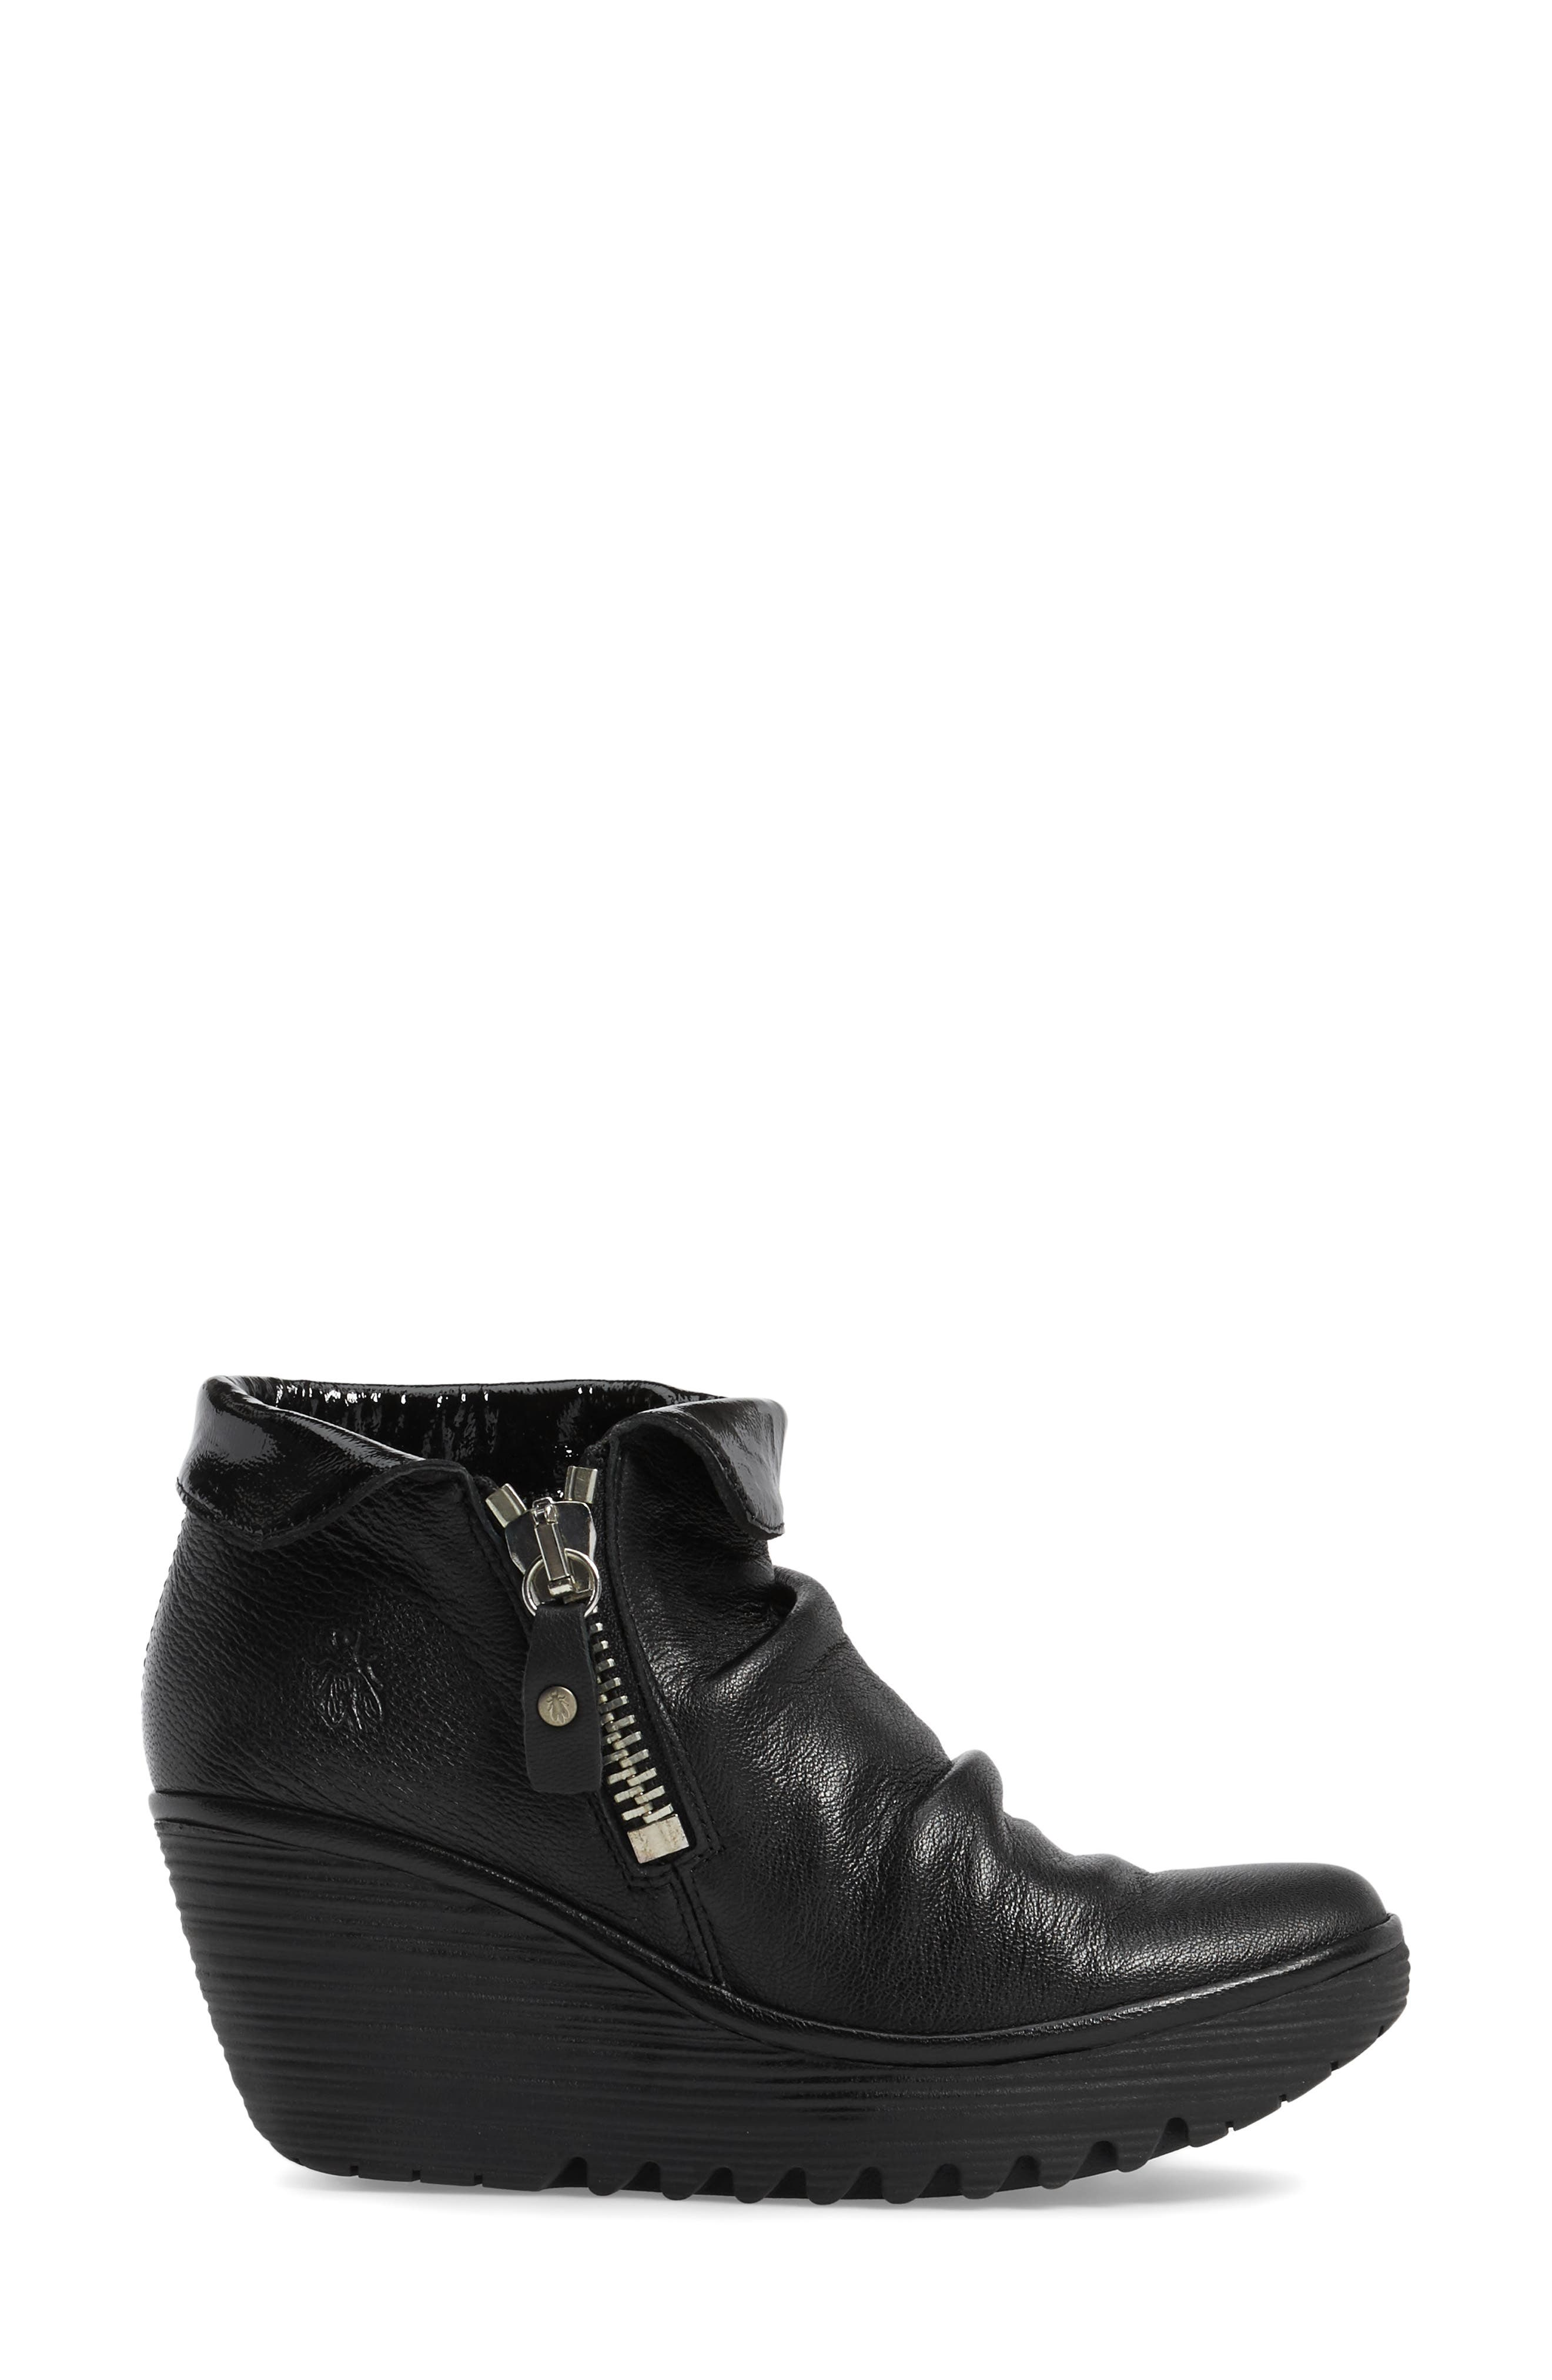 Yoxi Wedge Bootie,                             Alternate thumbnail 3, color,                             Black Leather